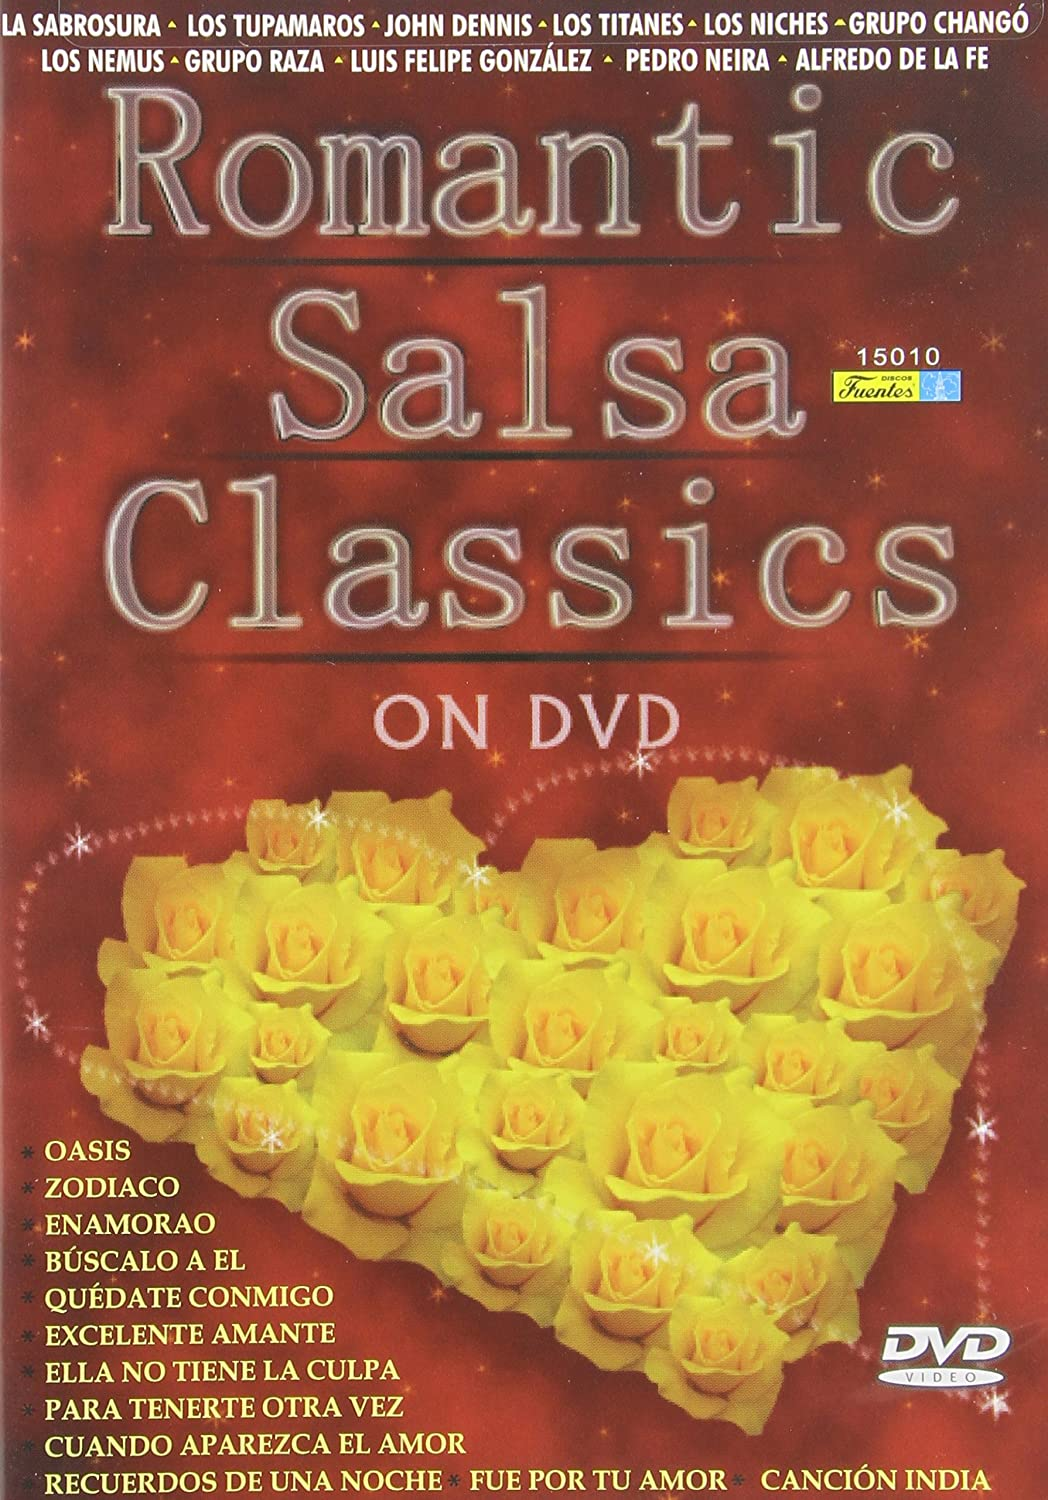 Amazon.com: Romantic Salsa Classics: Romantic Salsa Classics on Dvd: Movies & TV